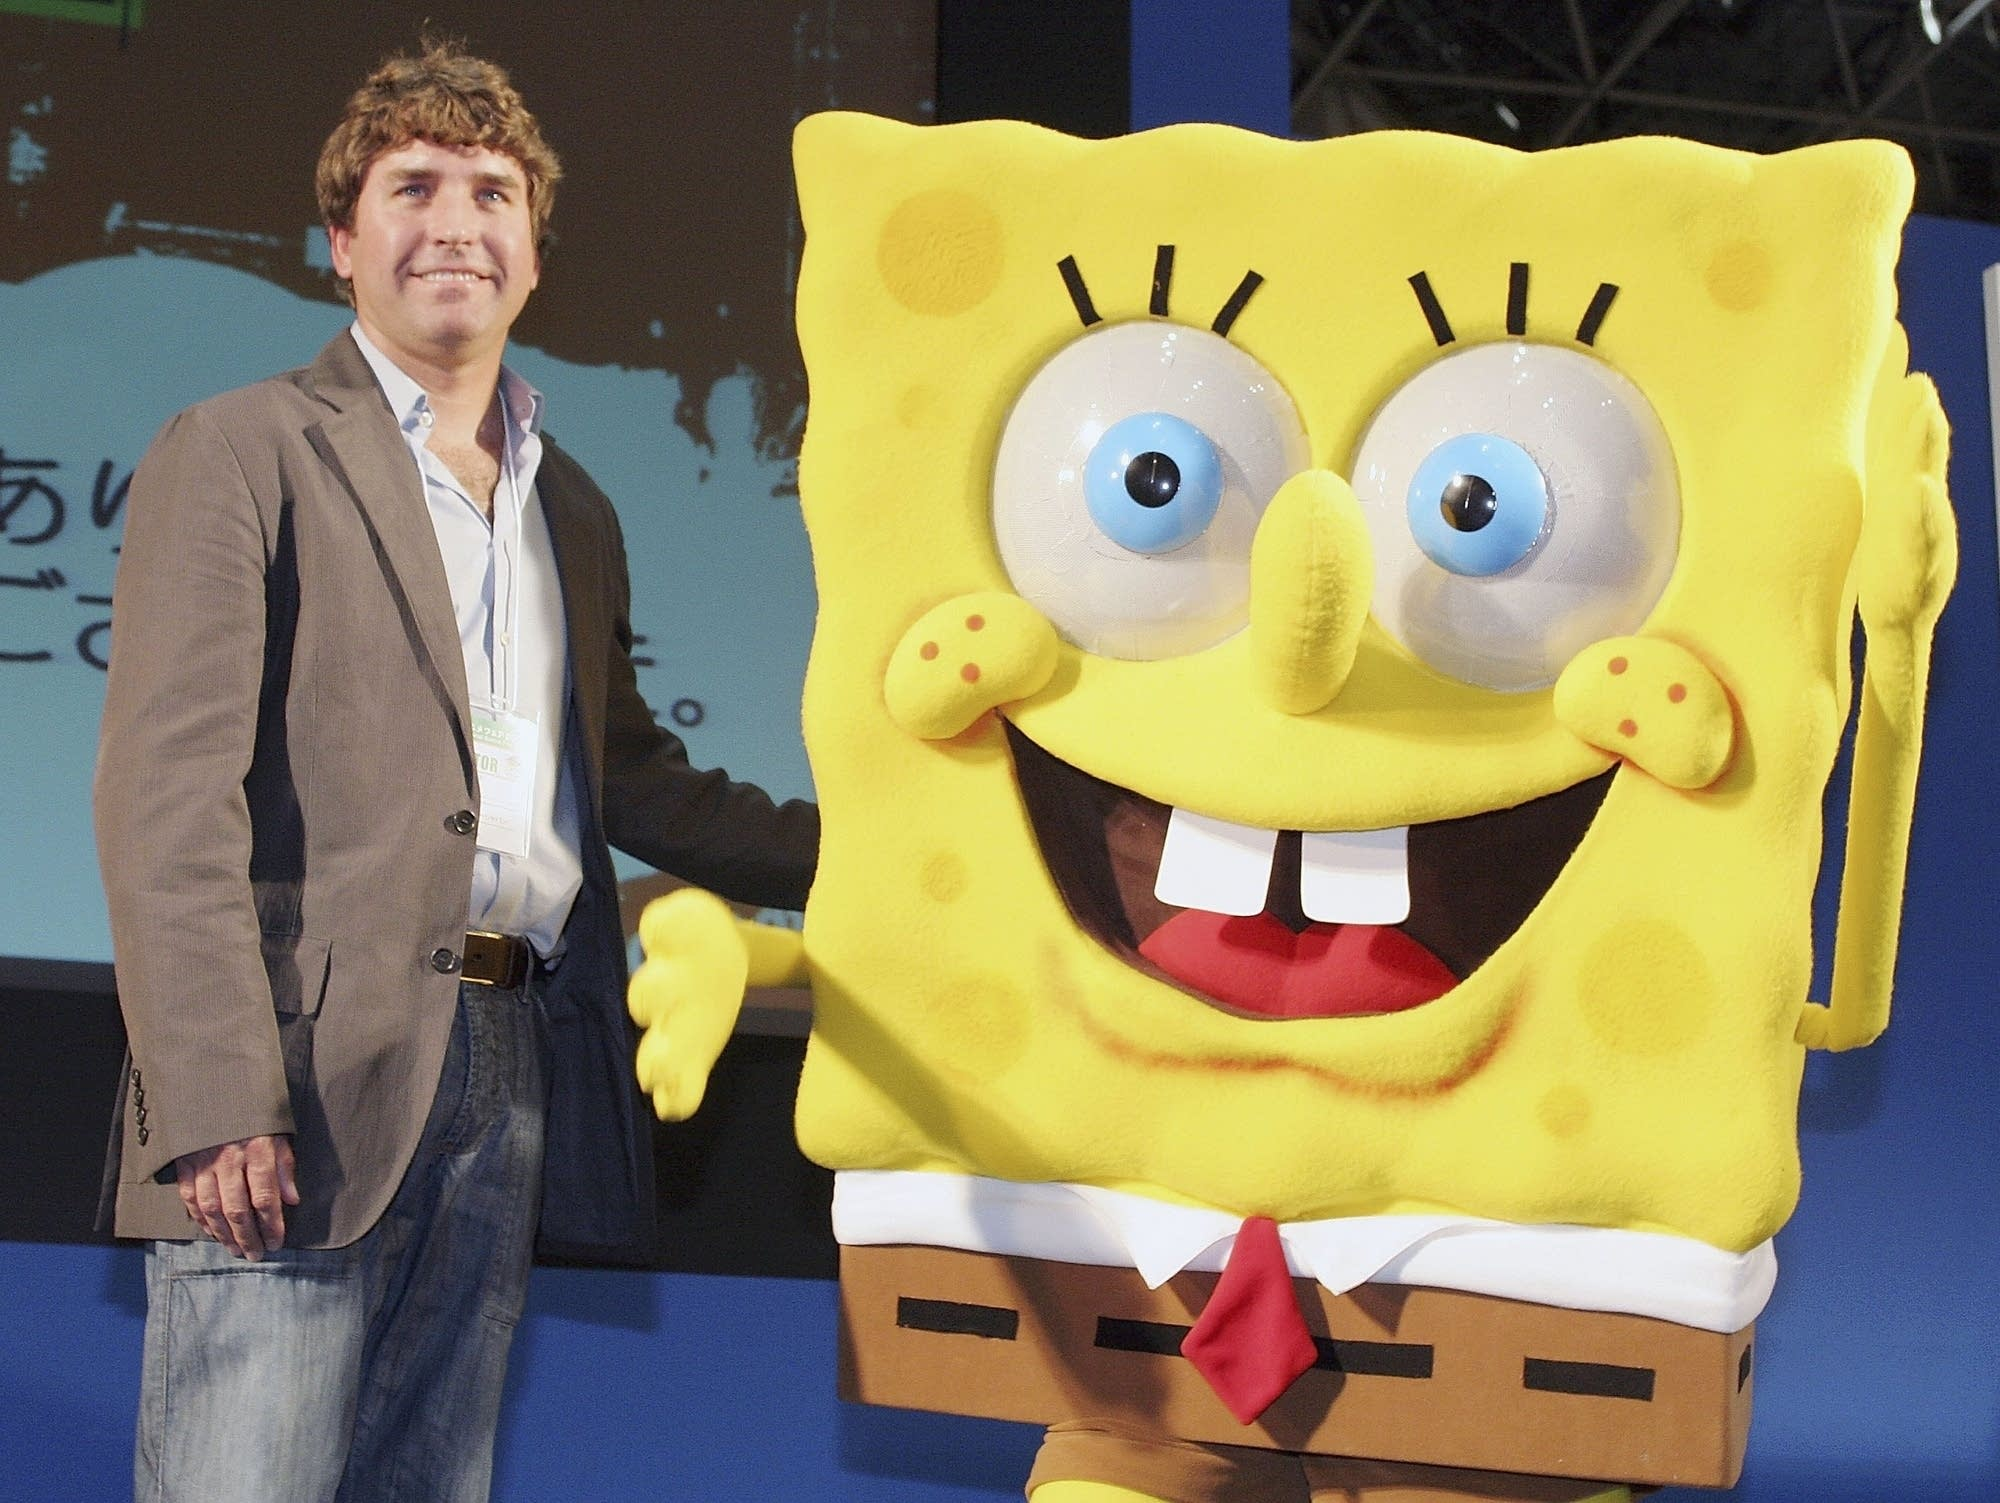 Stephen Hillenburg with his creation SpongeBob SquarePants in 2006.